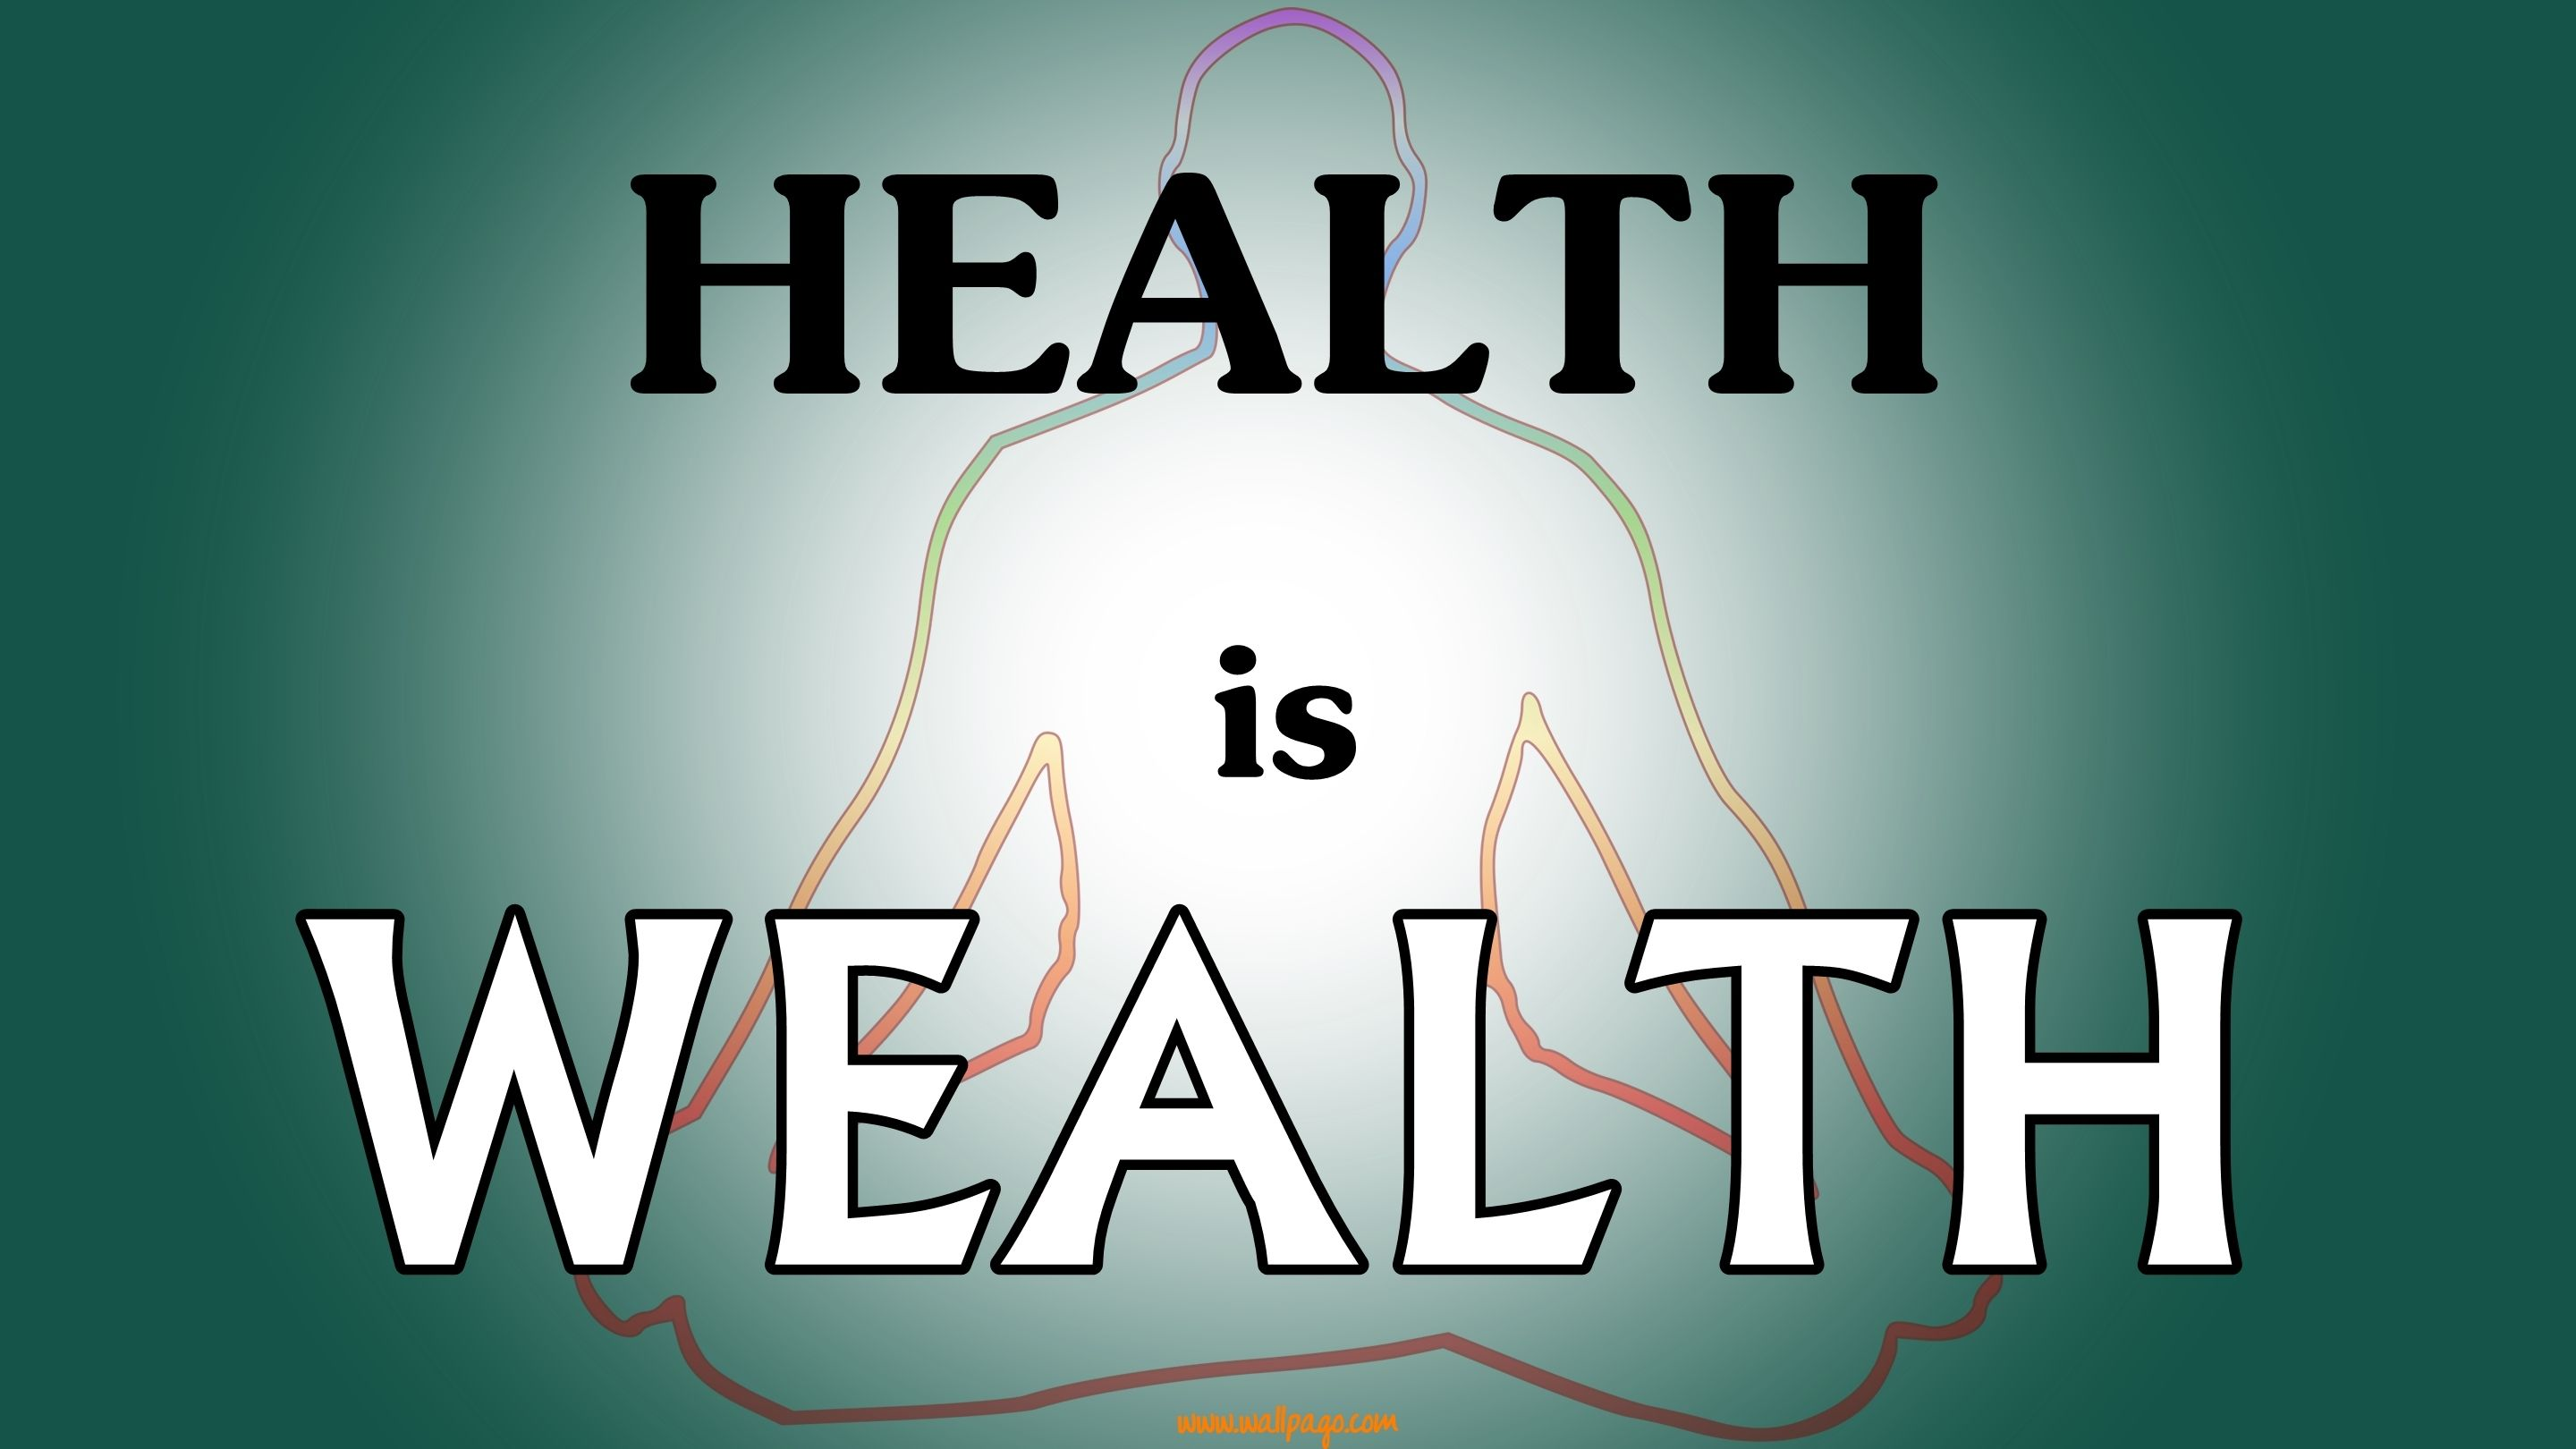 Health is Wealth ThySelfThyGift wiseandmindfulchoices